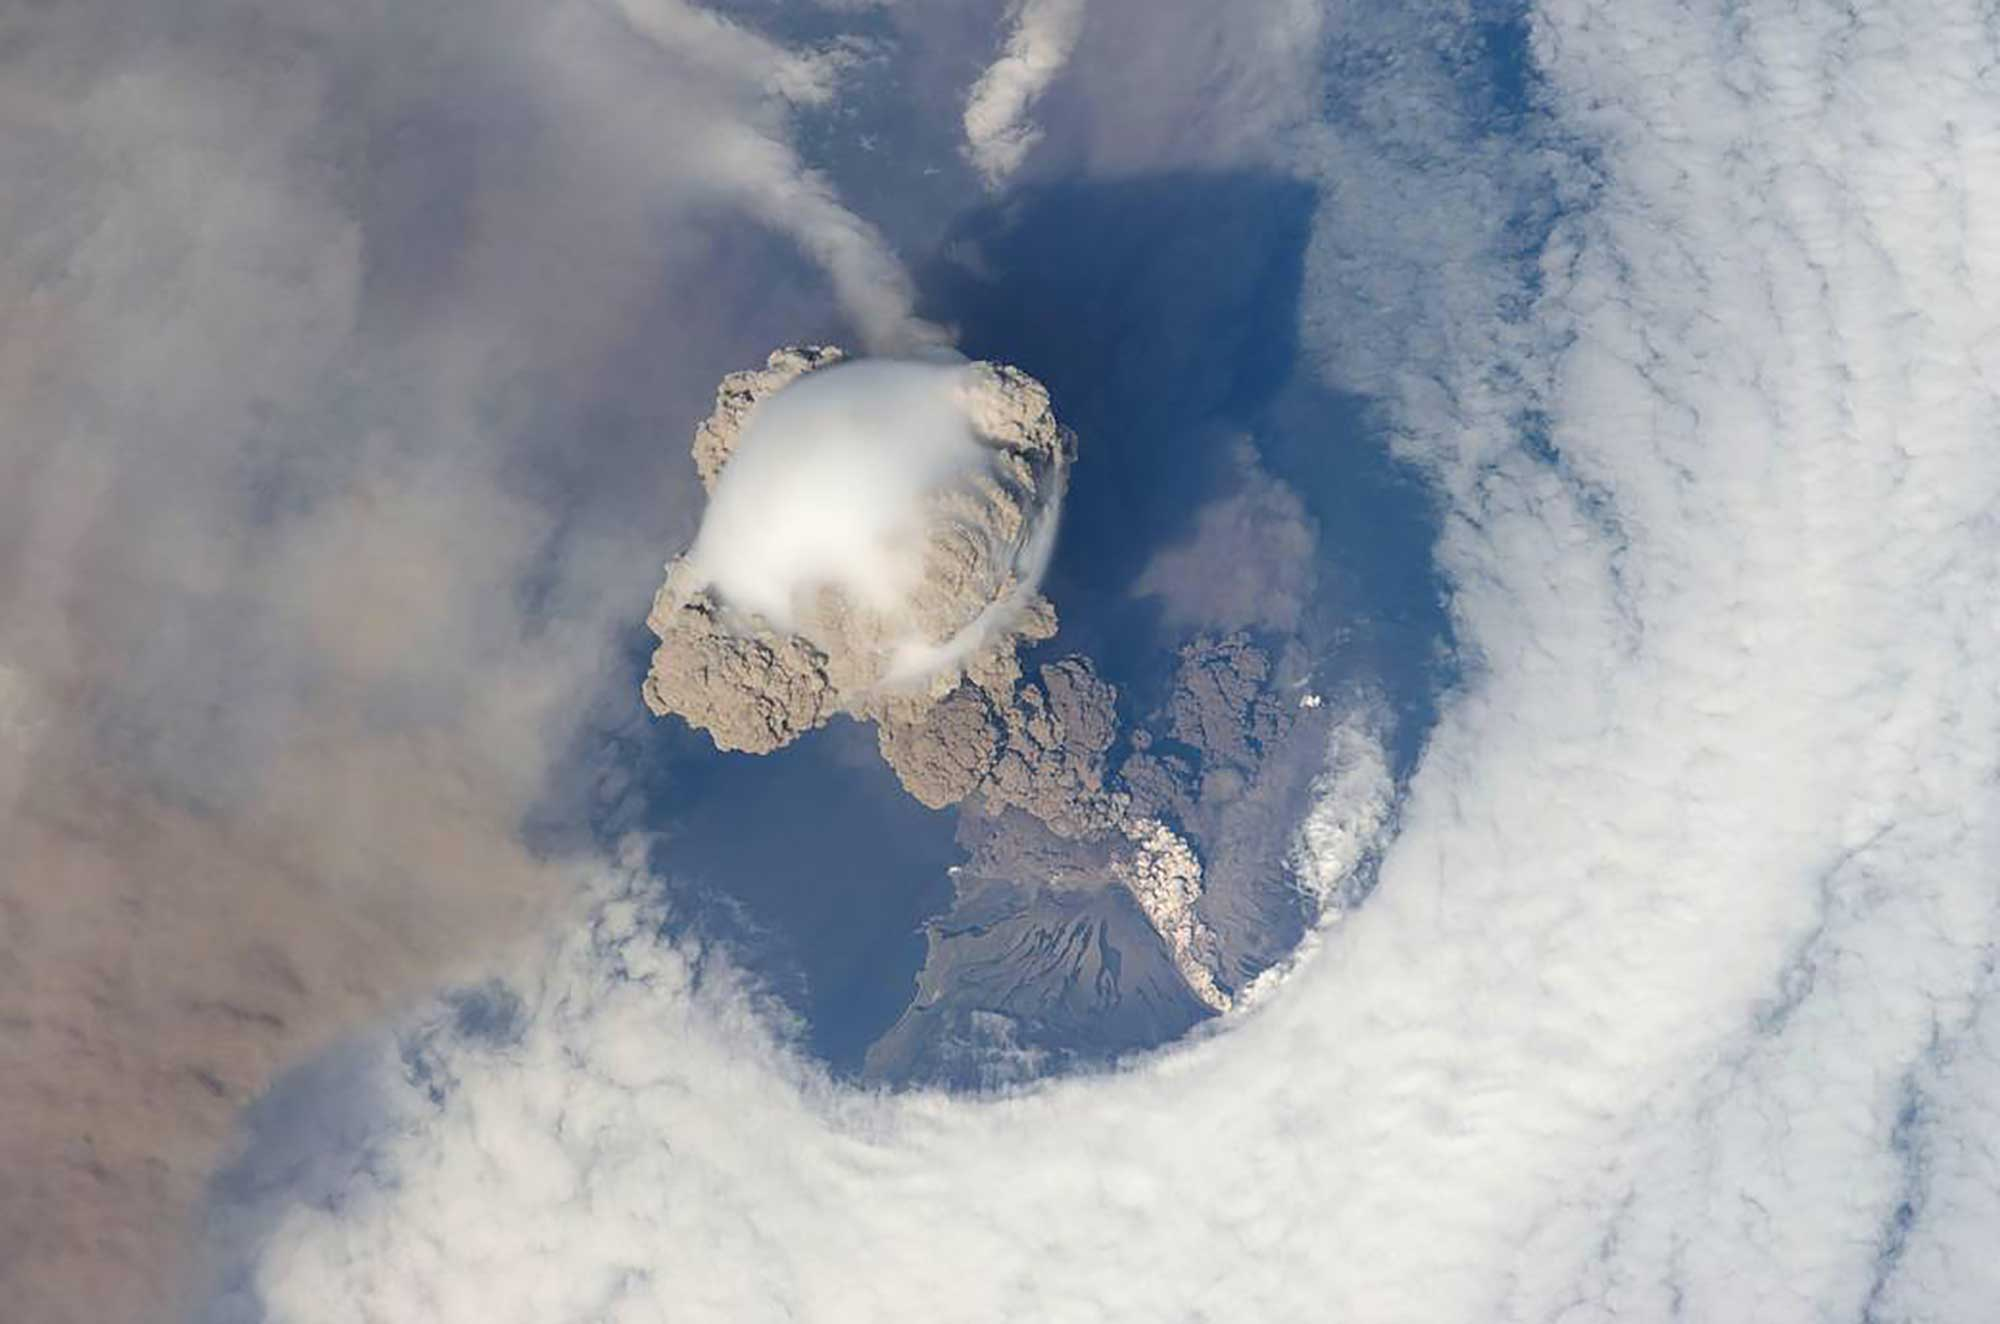 Photograph of an erupting volcano taken from space.